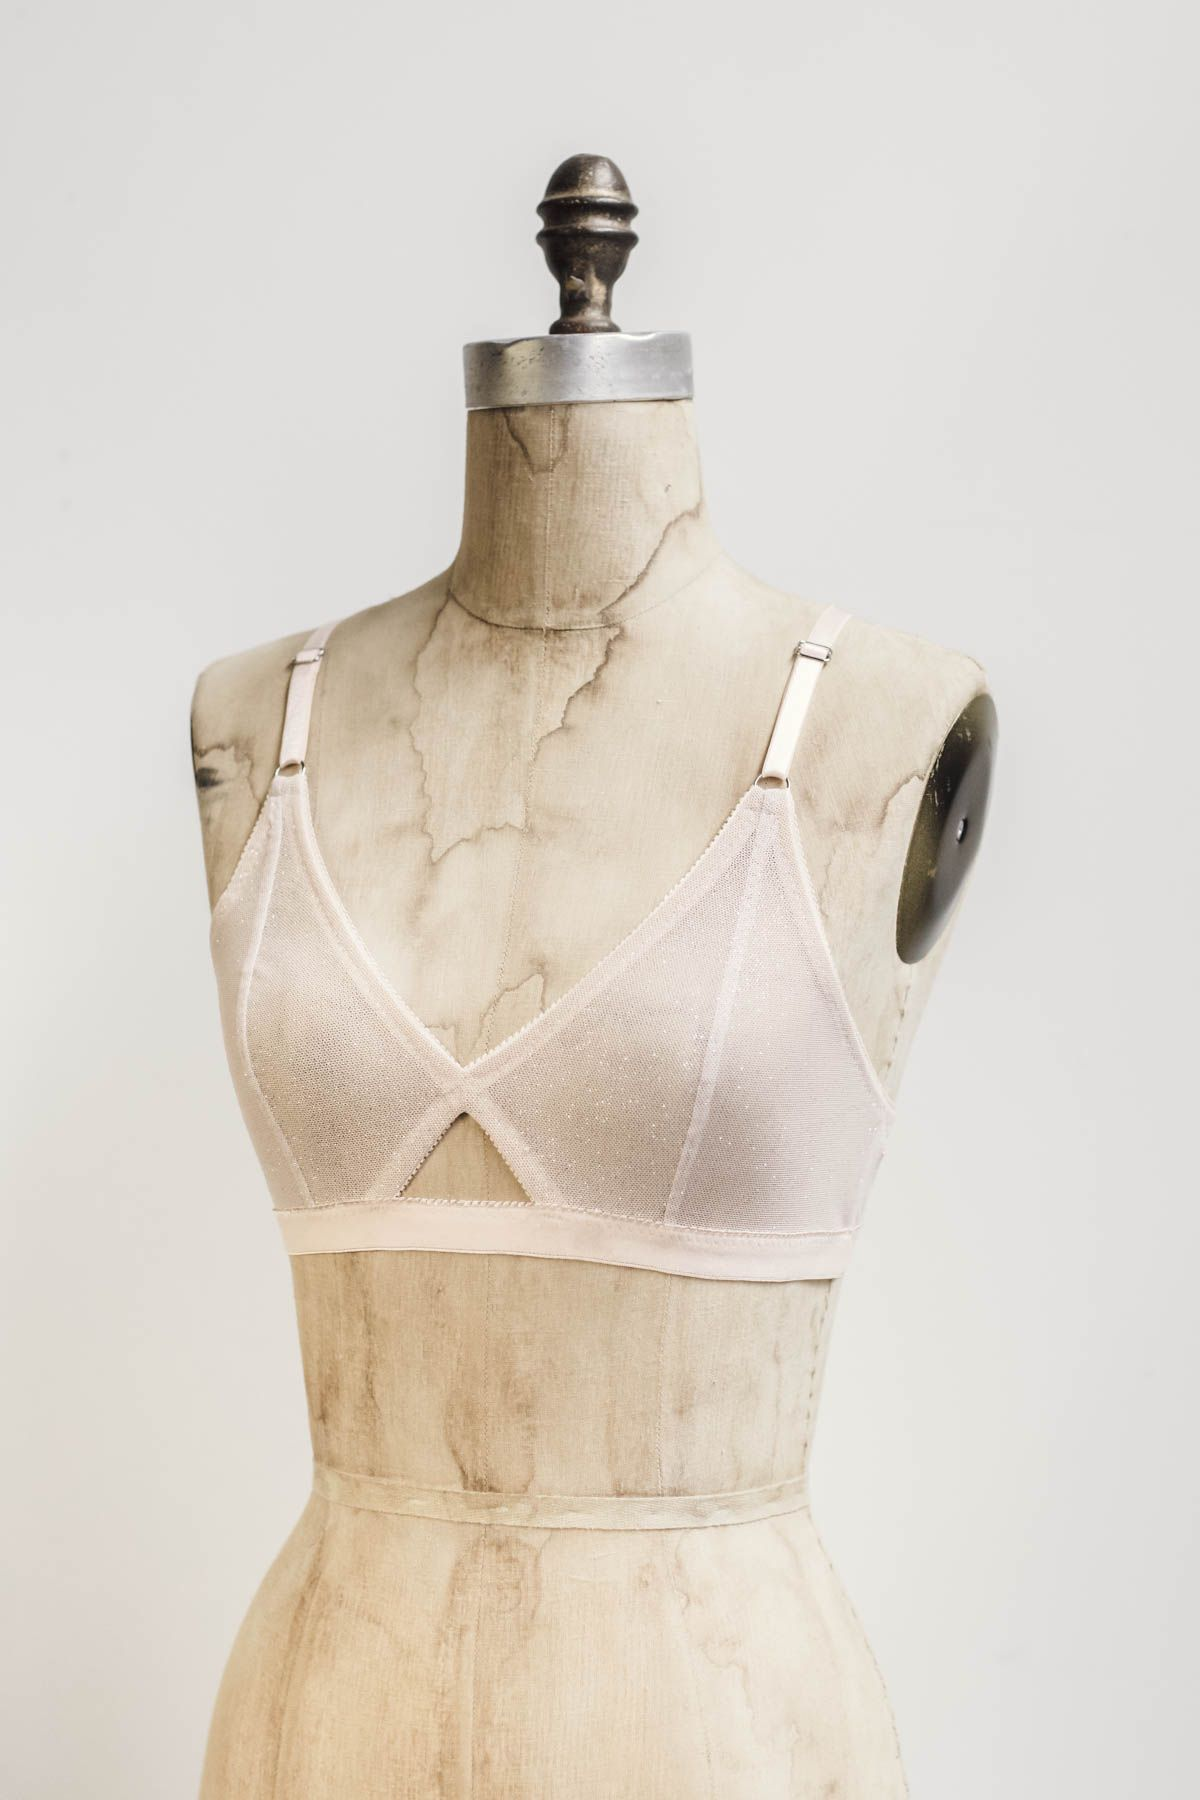 cb1dbe664 Madalynne Intimates + Lingerie - Bralettes to Buy and Sew!